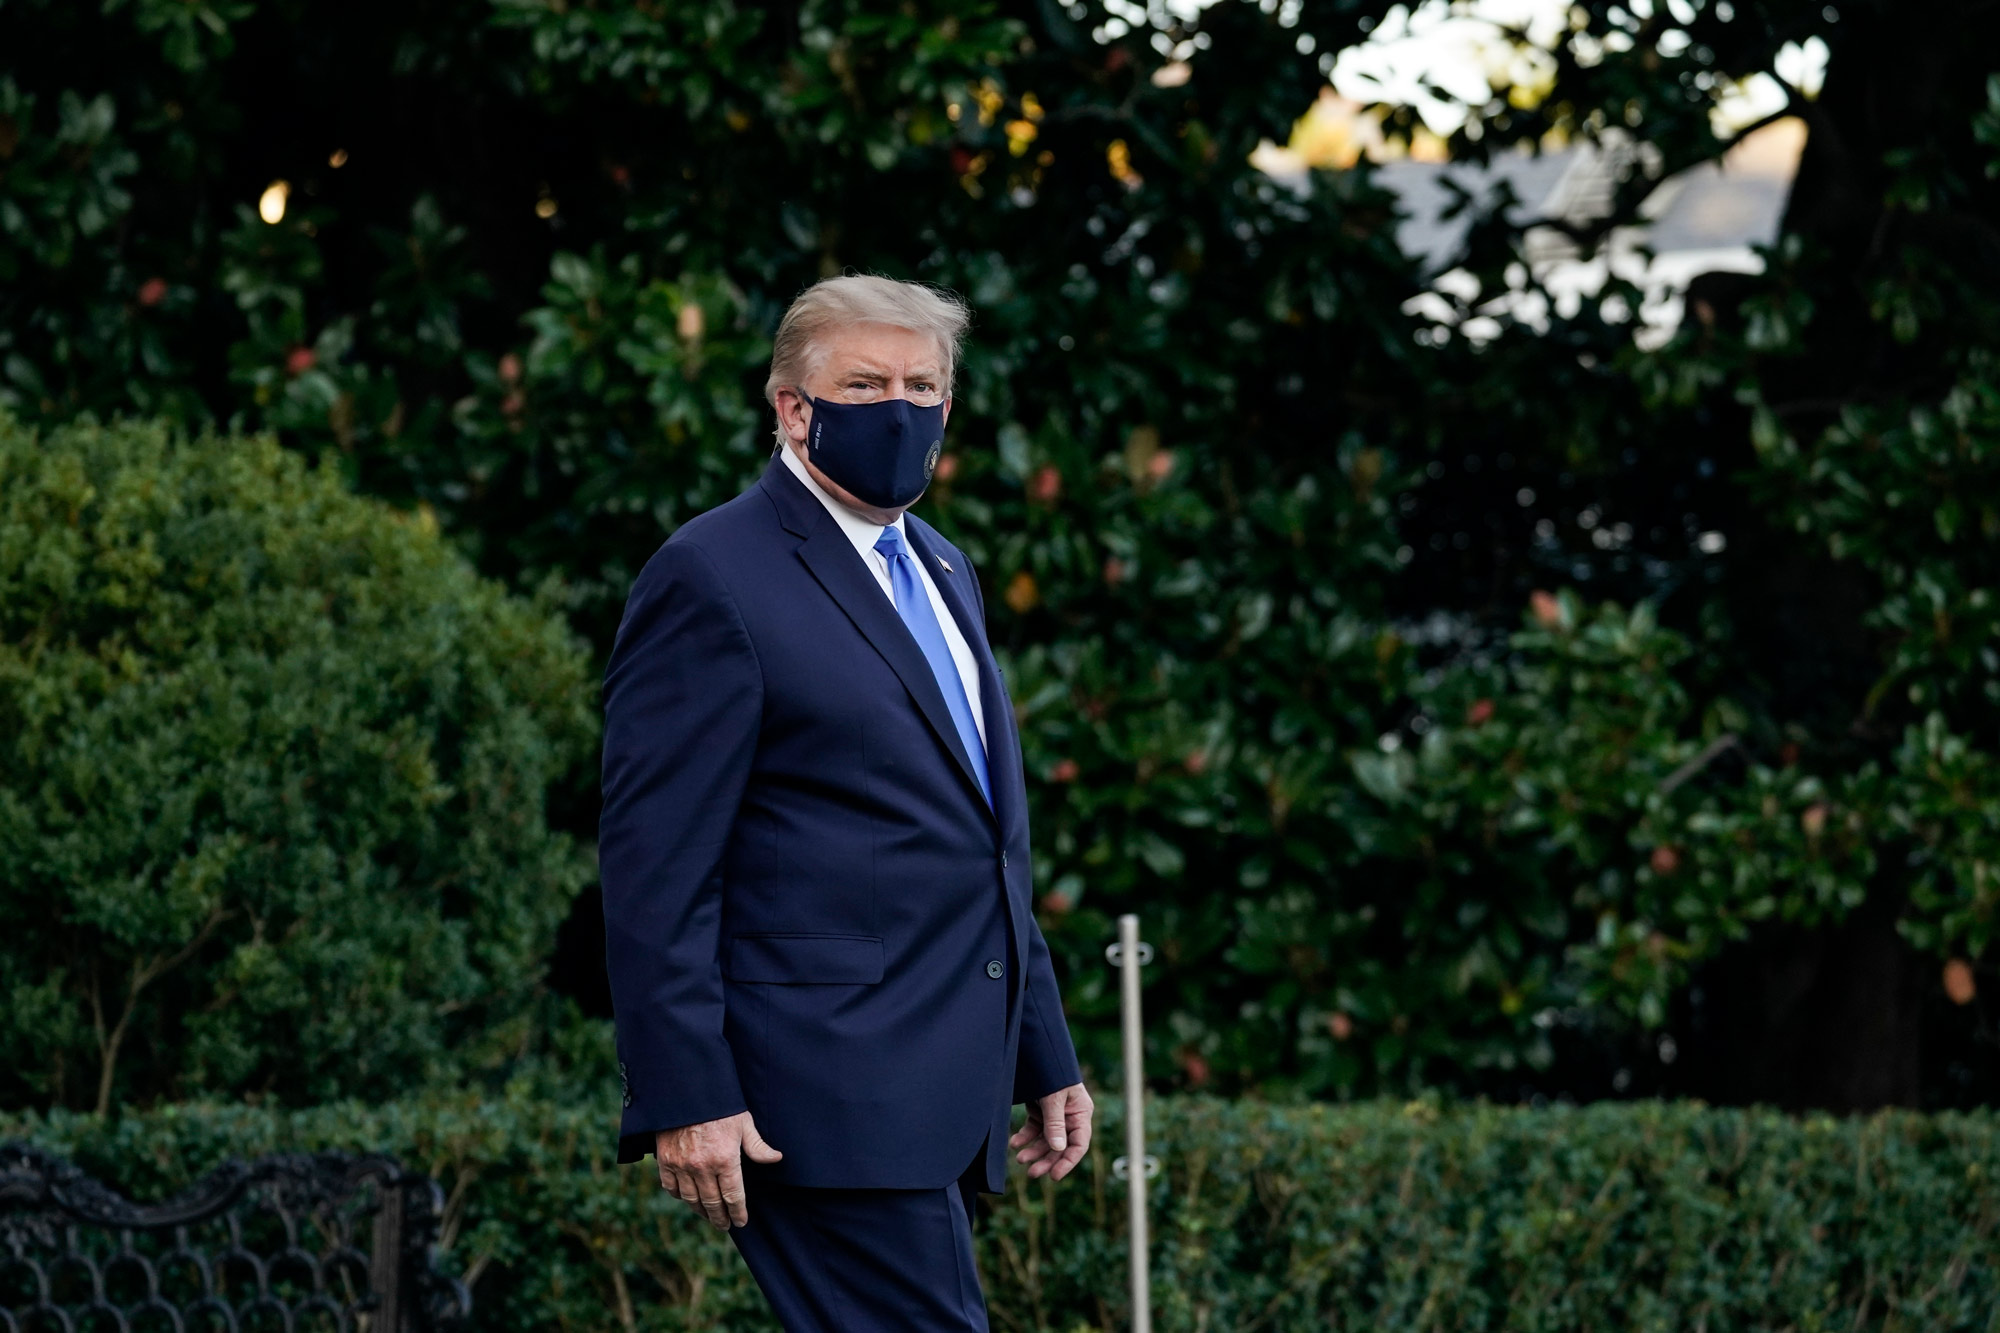 President Donald Trump leaves the White House for Walter Reed National Military Medical Center on the South Lawn of the White House on October 2 in Washington, DC.